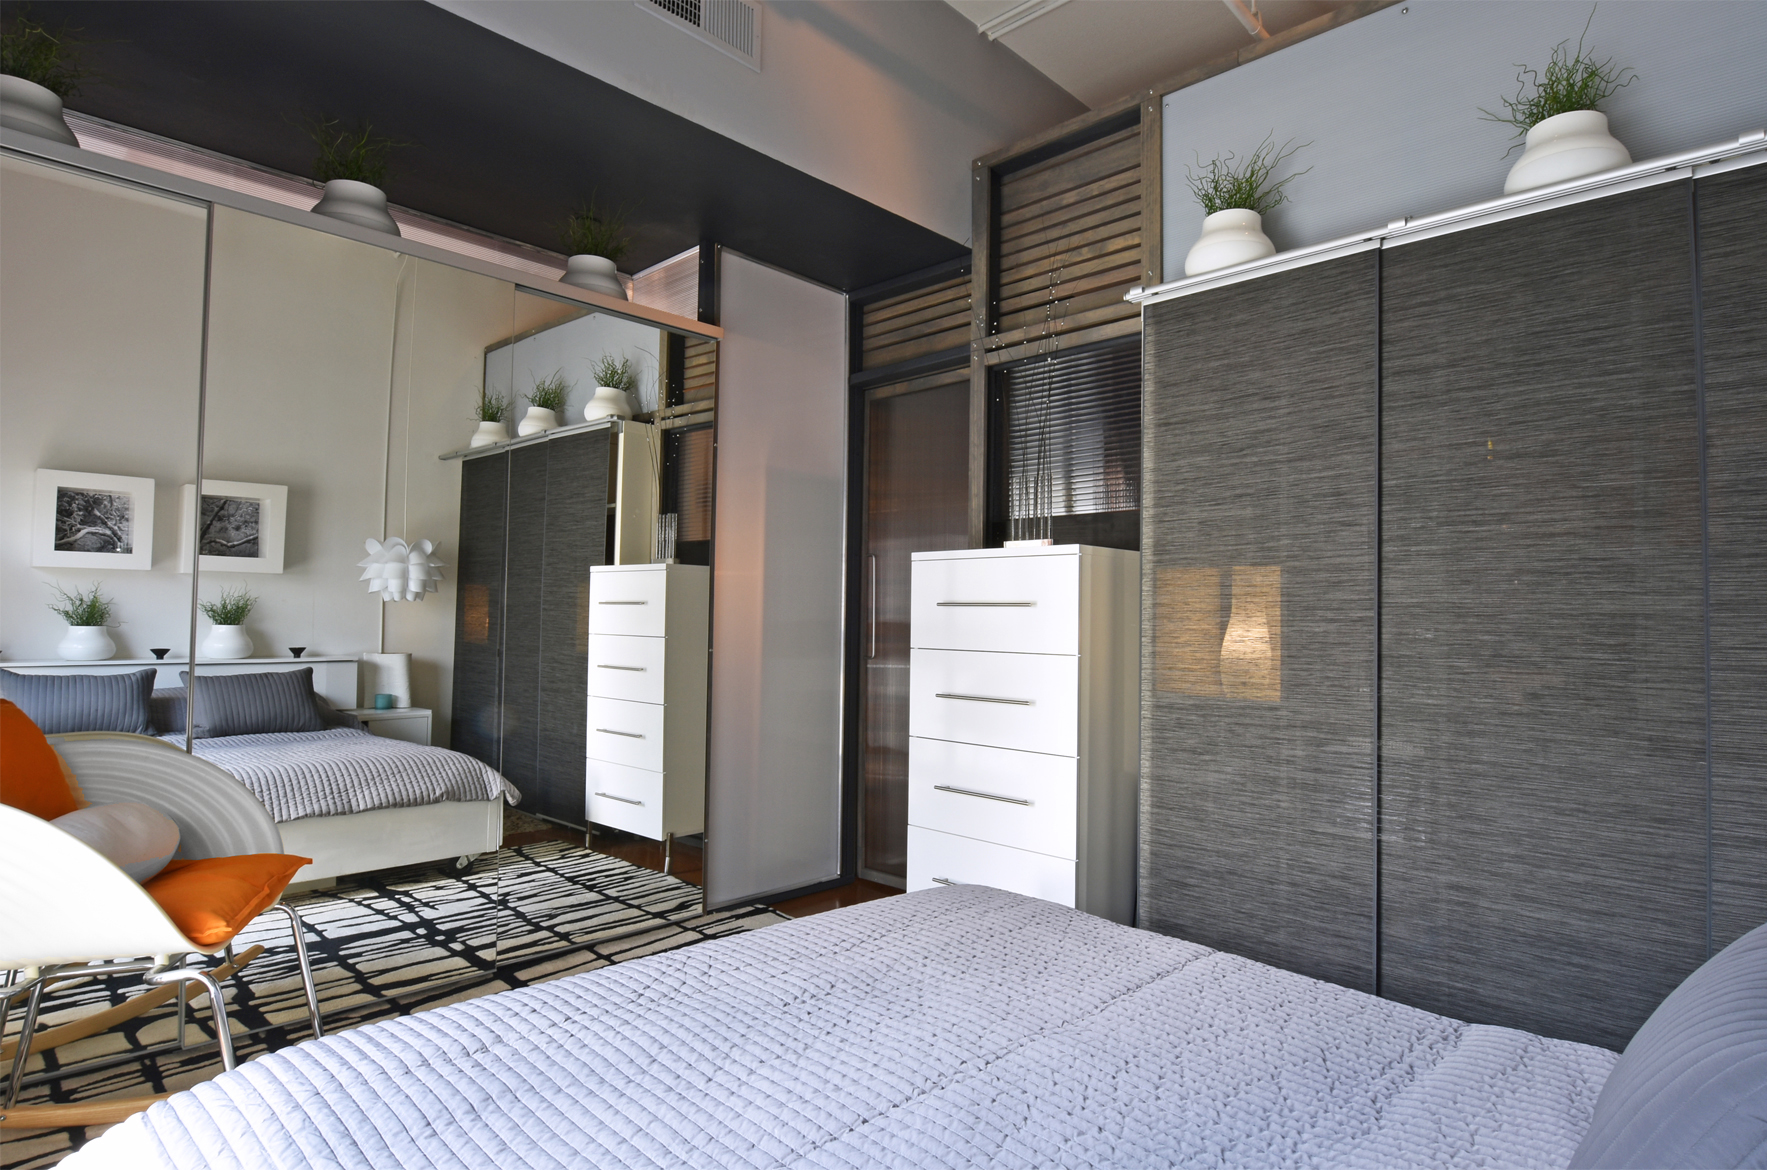 Riveting Small Space Living Uptown Studio Charlotte Small Space Living Uptown Studio Charlotte Nc Small Space Apartment Decorating Small Space Apartment Storage apartment Small Space Apartment